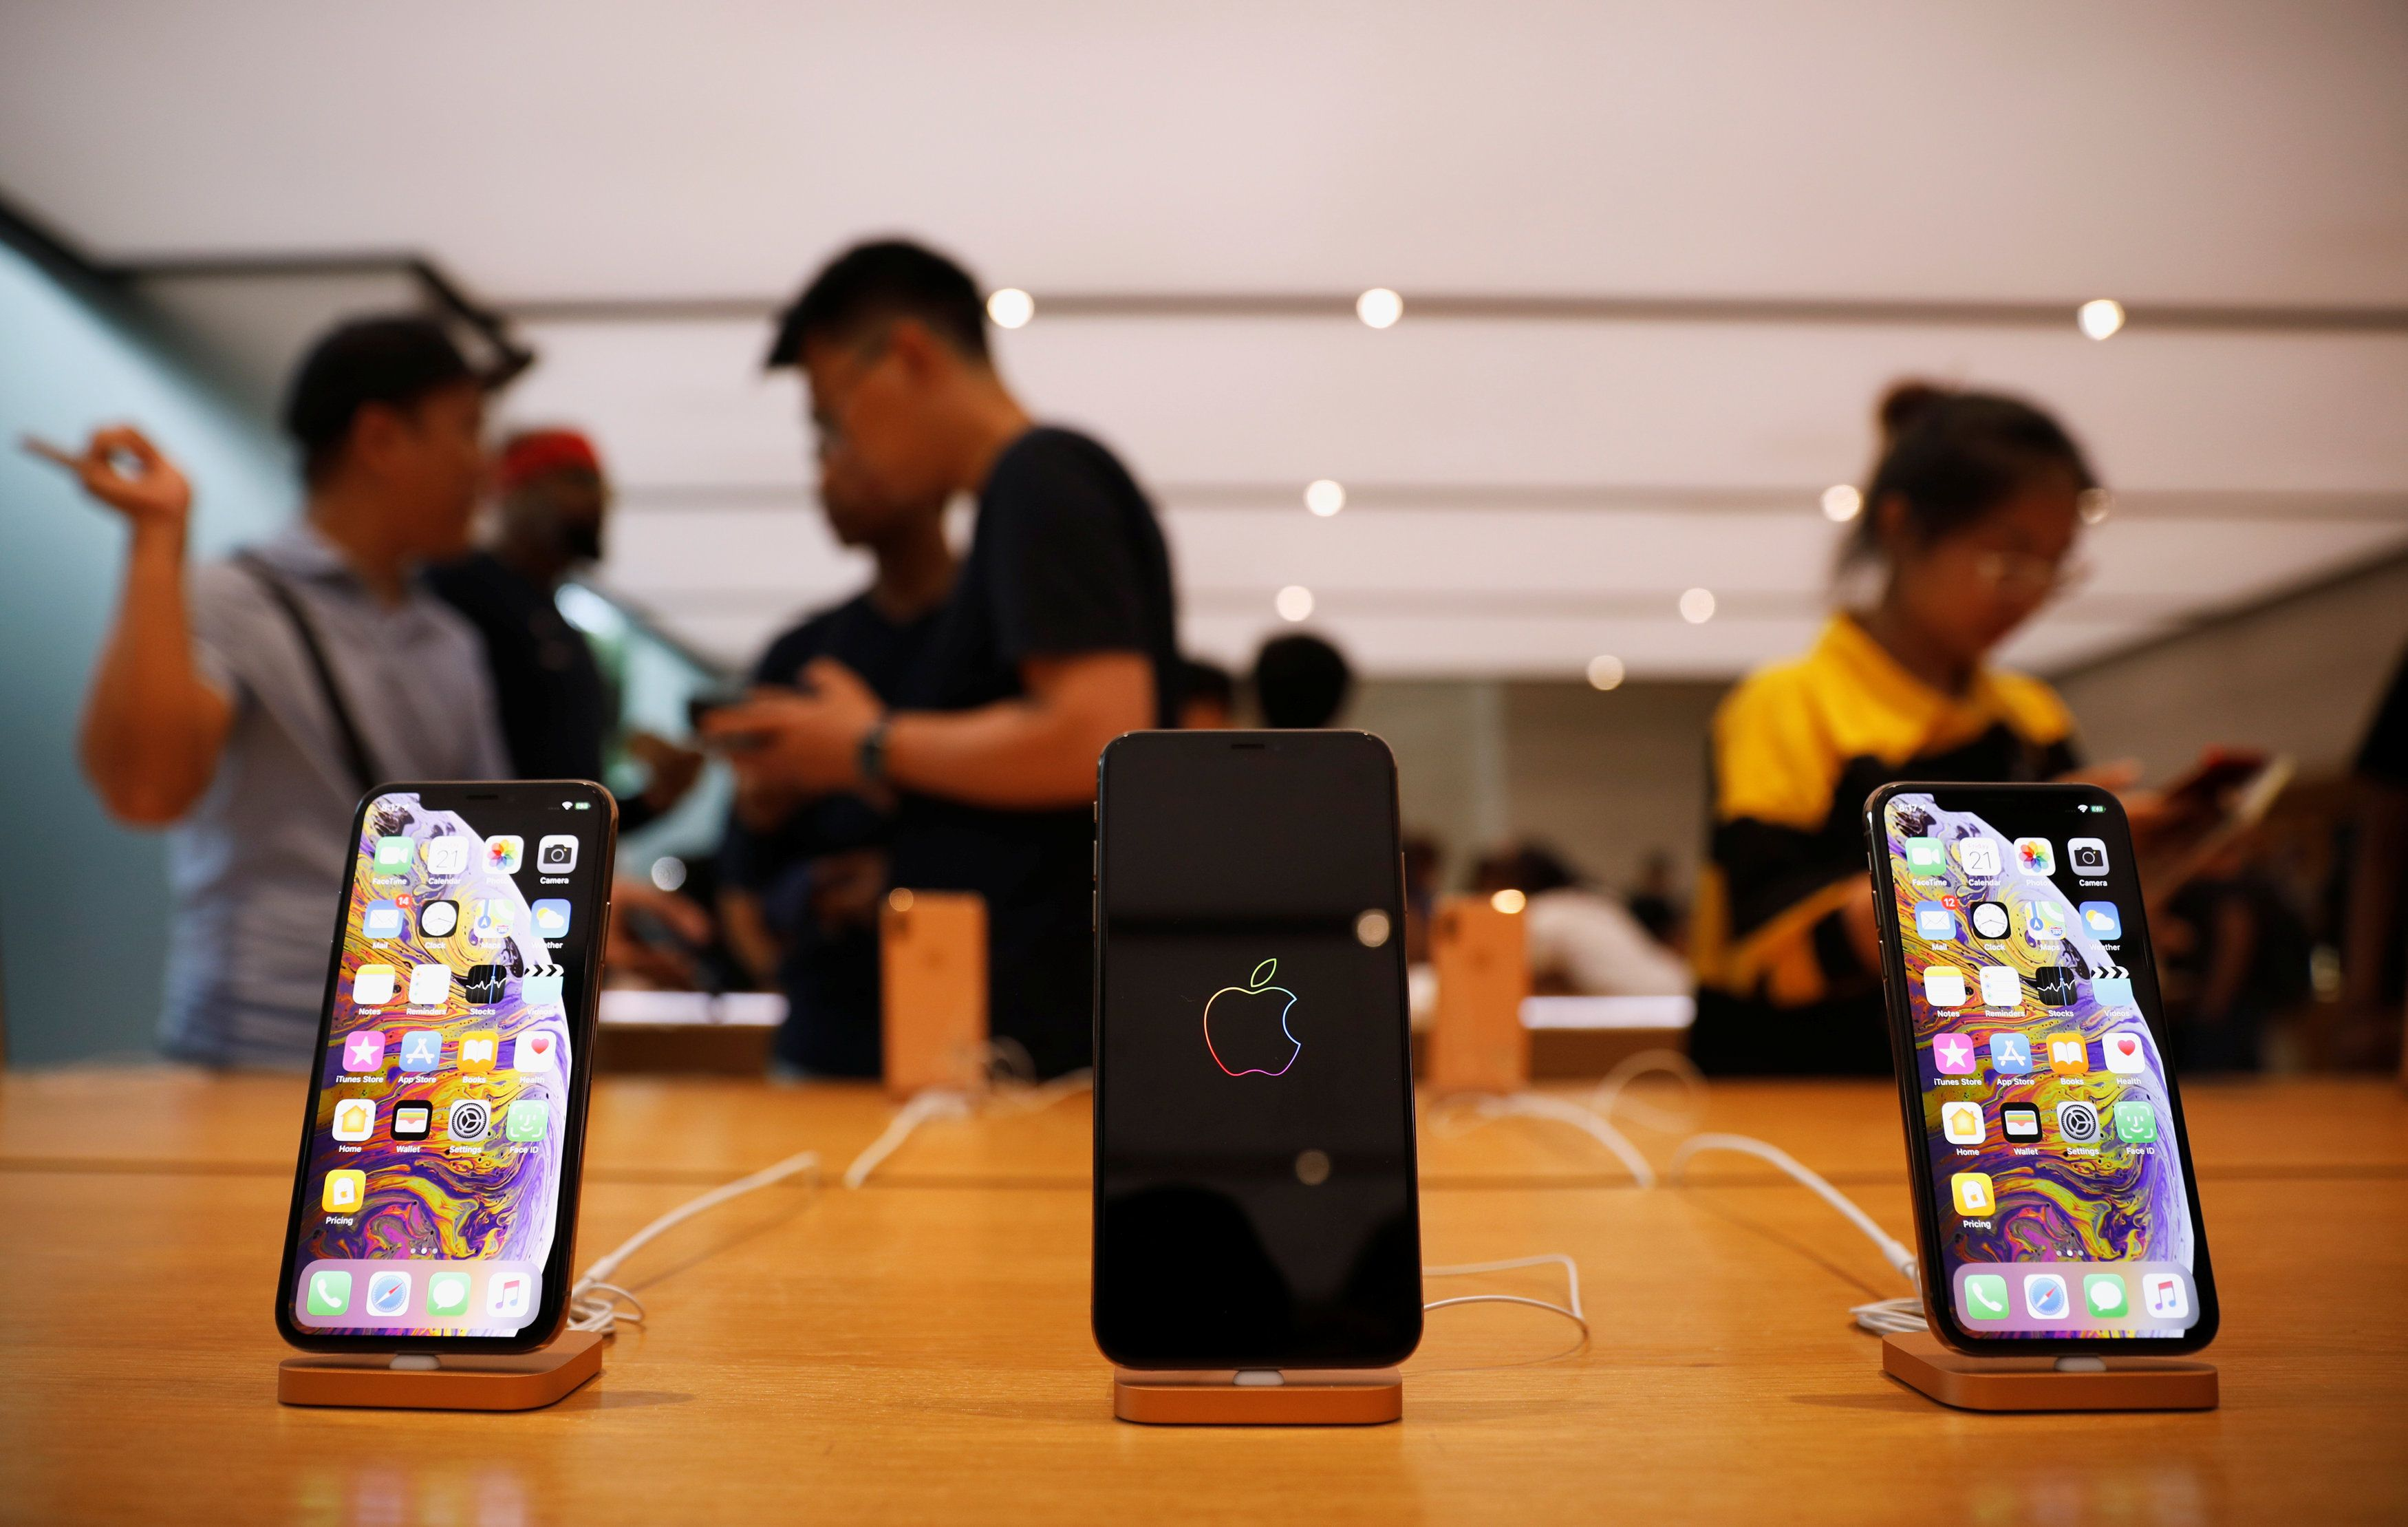 The iPhone XS and iPhone XS Max are displayed at the Apple Store in Singapore September 21, 2018. REUTERS/Edgar Su